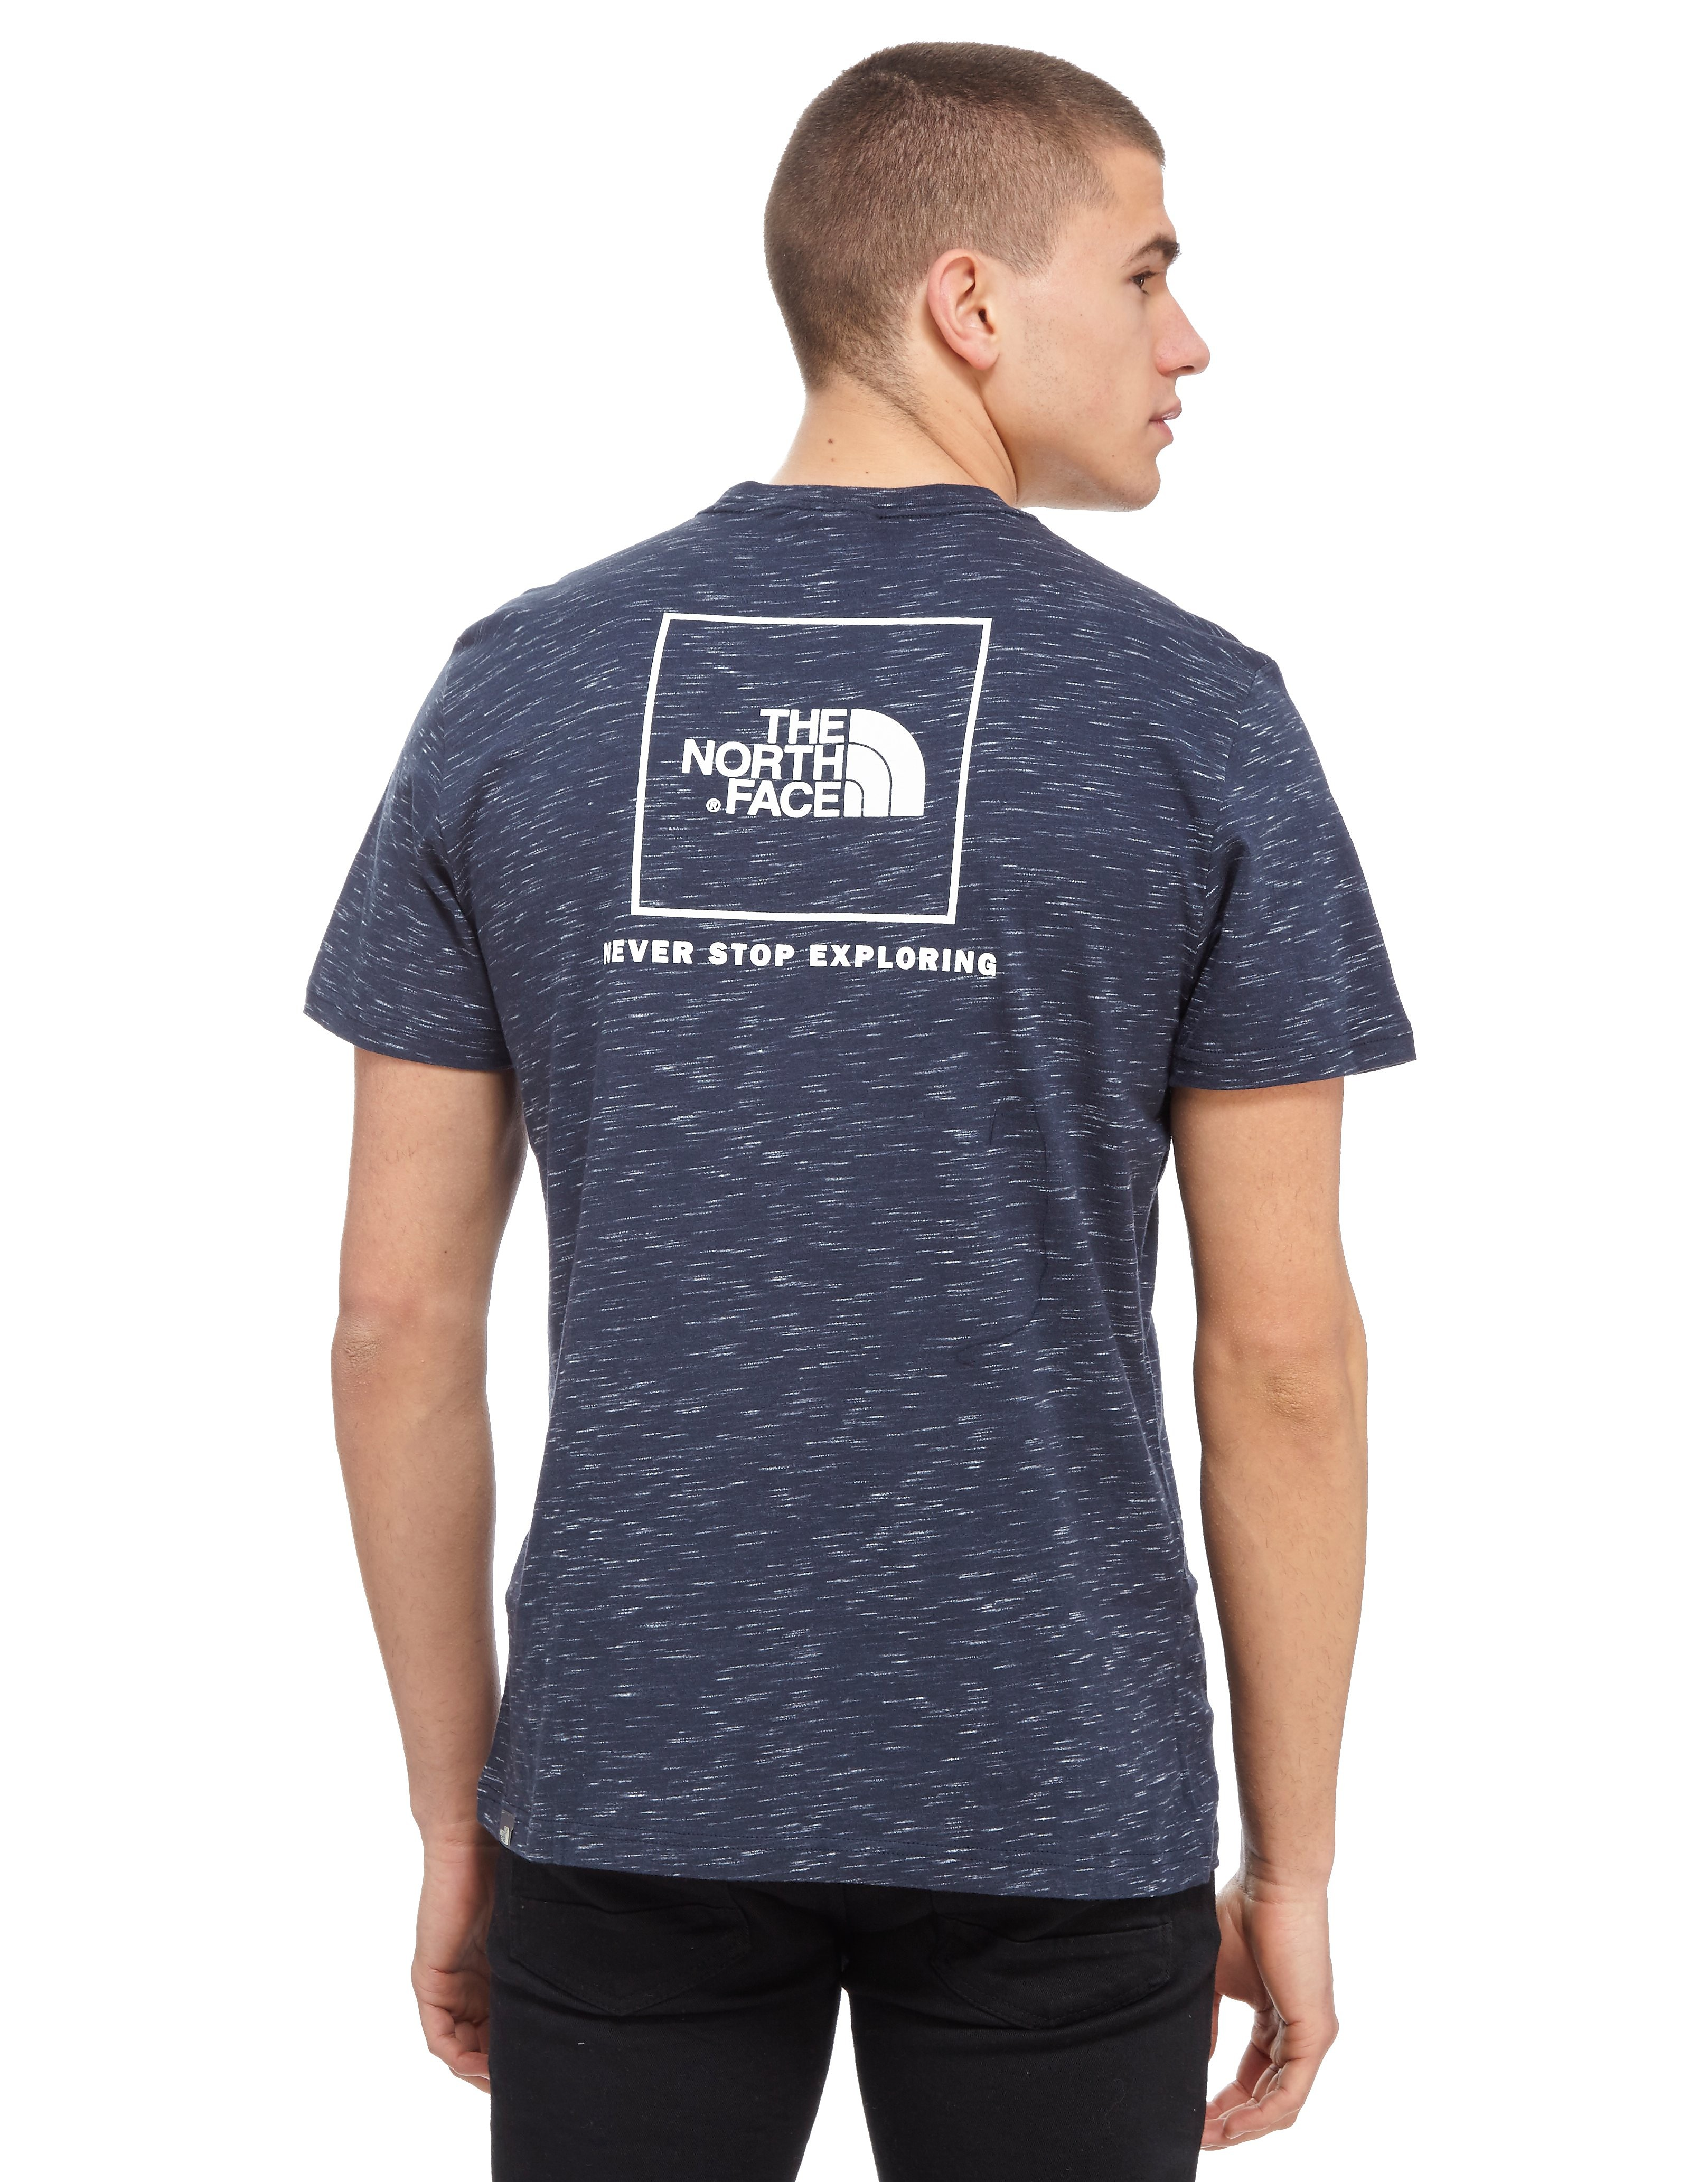 The North Face Redbox Infill T-Shirt